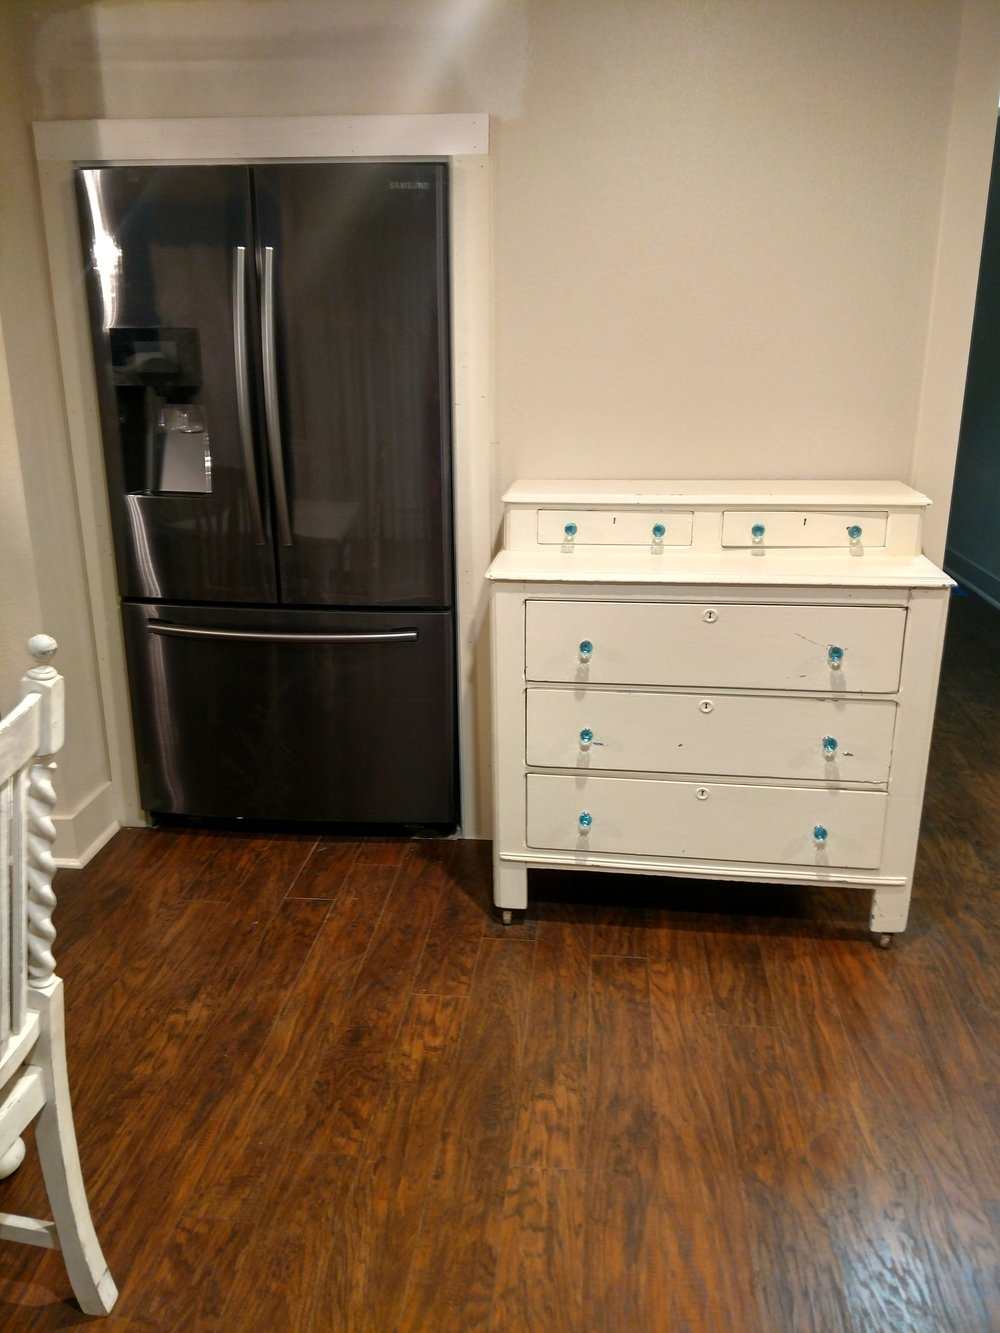 Refrigerator and Chest of Drawers